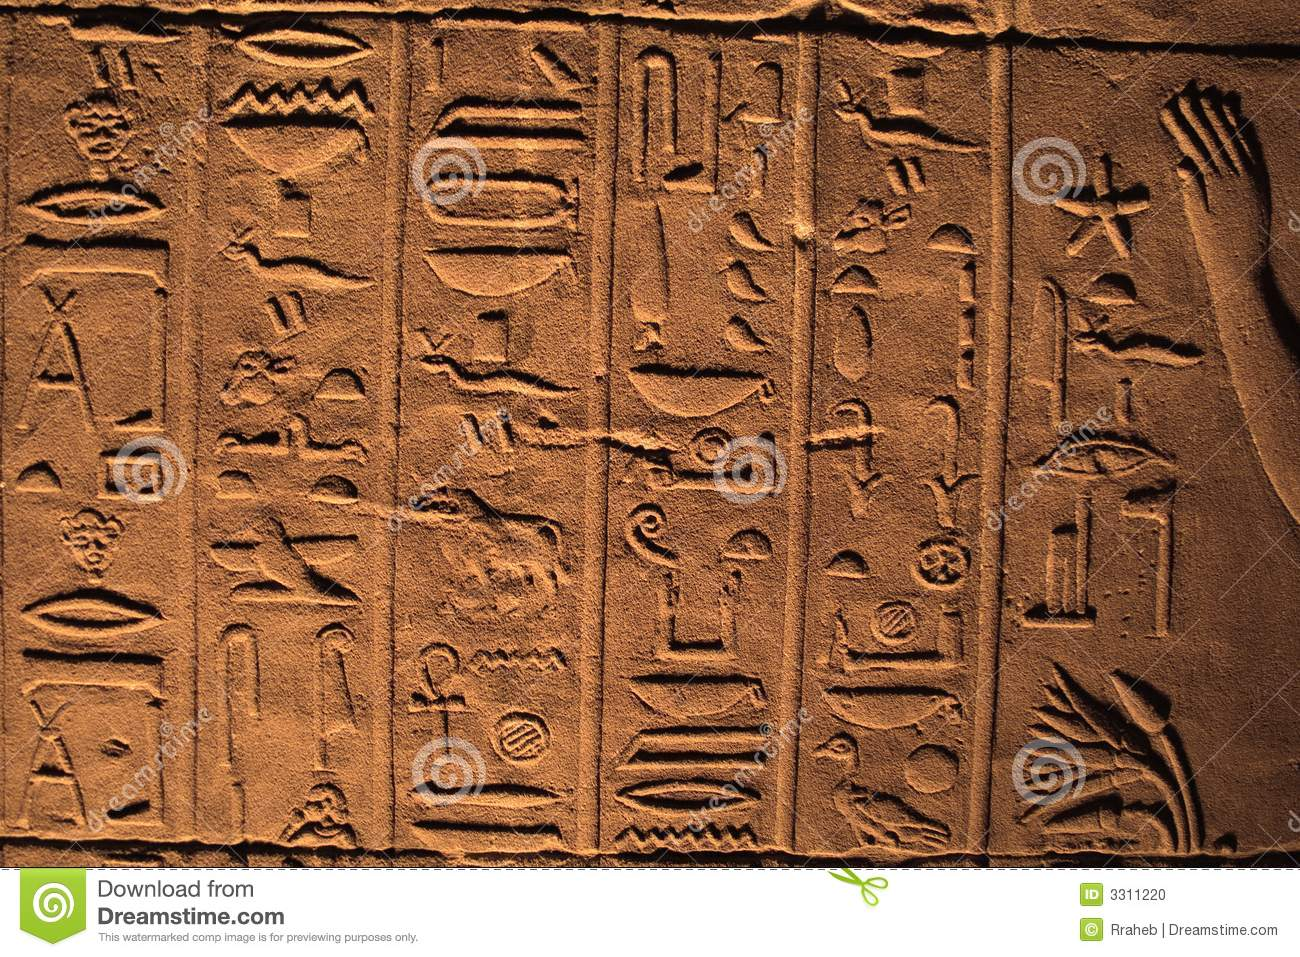 isis plan map with Stock Photo Hieroglyphics Ancient Egypt Image3311220 on Chinas Silk Road Initiative Is At Risk Of Failure as well Villa 20mysteries 20plan likewise White House Location On Us Map additionally When War Games Go Live Preparing To Attack Iran Simulating World War Iii furthermore Two Explosions Heard Brussels Airport.